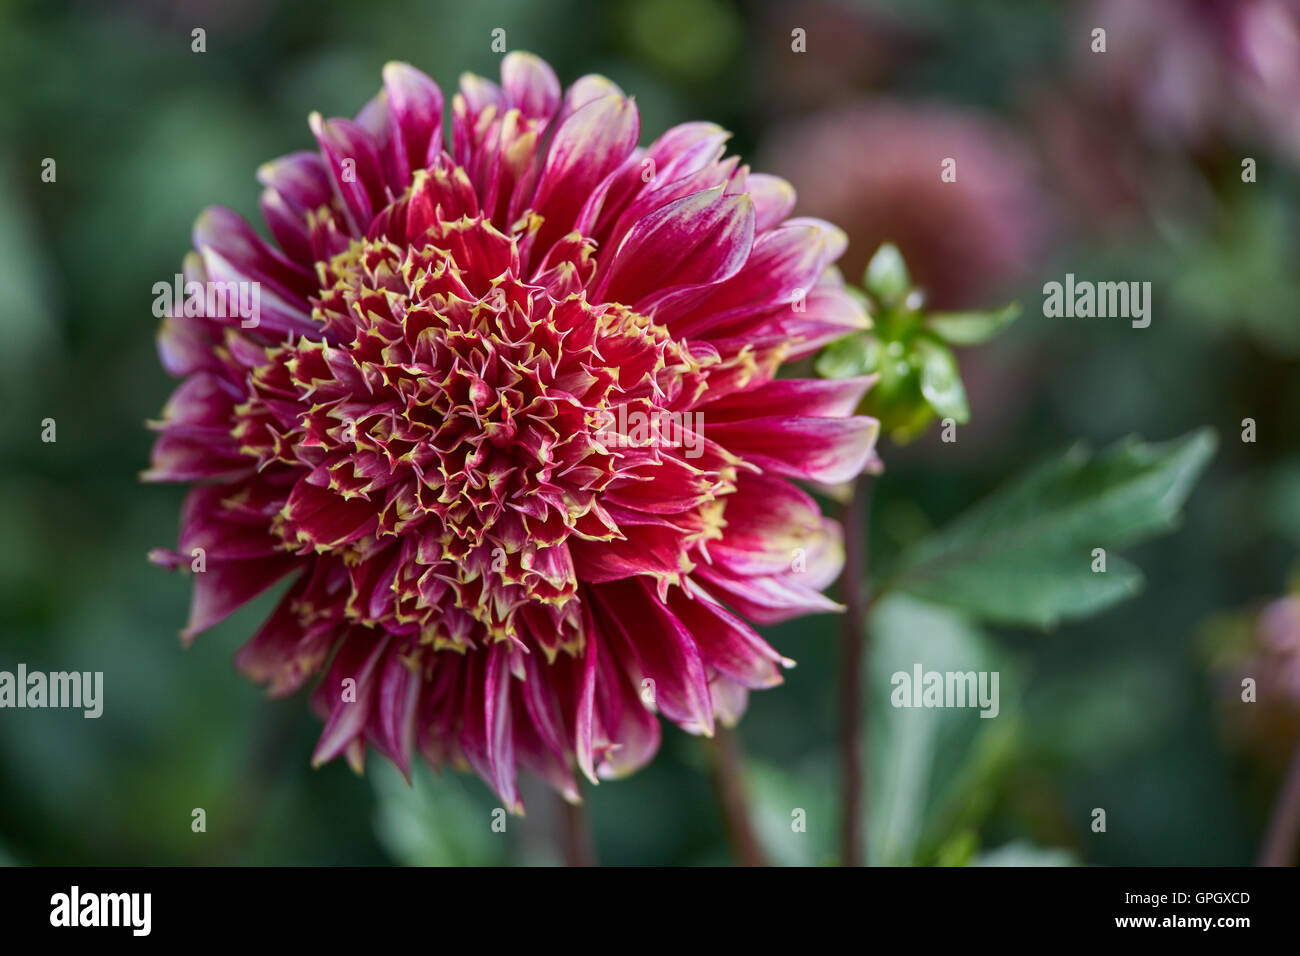 Red dahlia with white petals tips stock photo 117156605 alamy red dahlia with white petals tips mightylinksfo